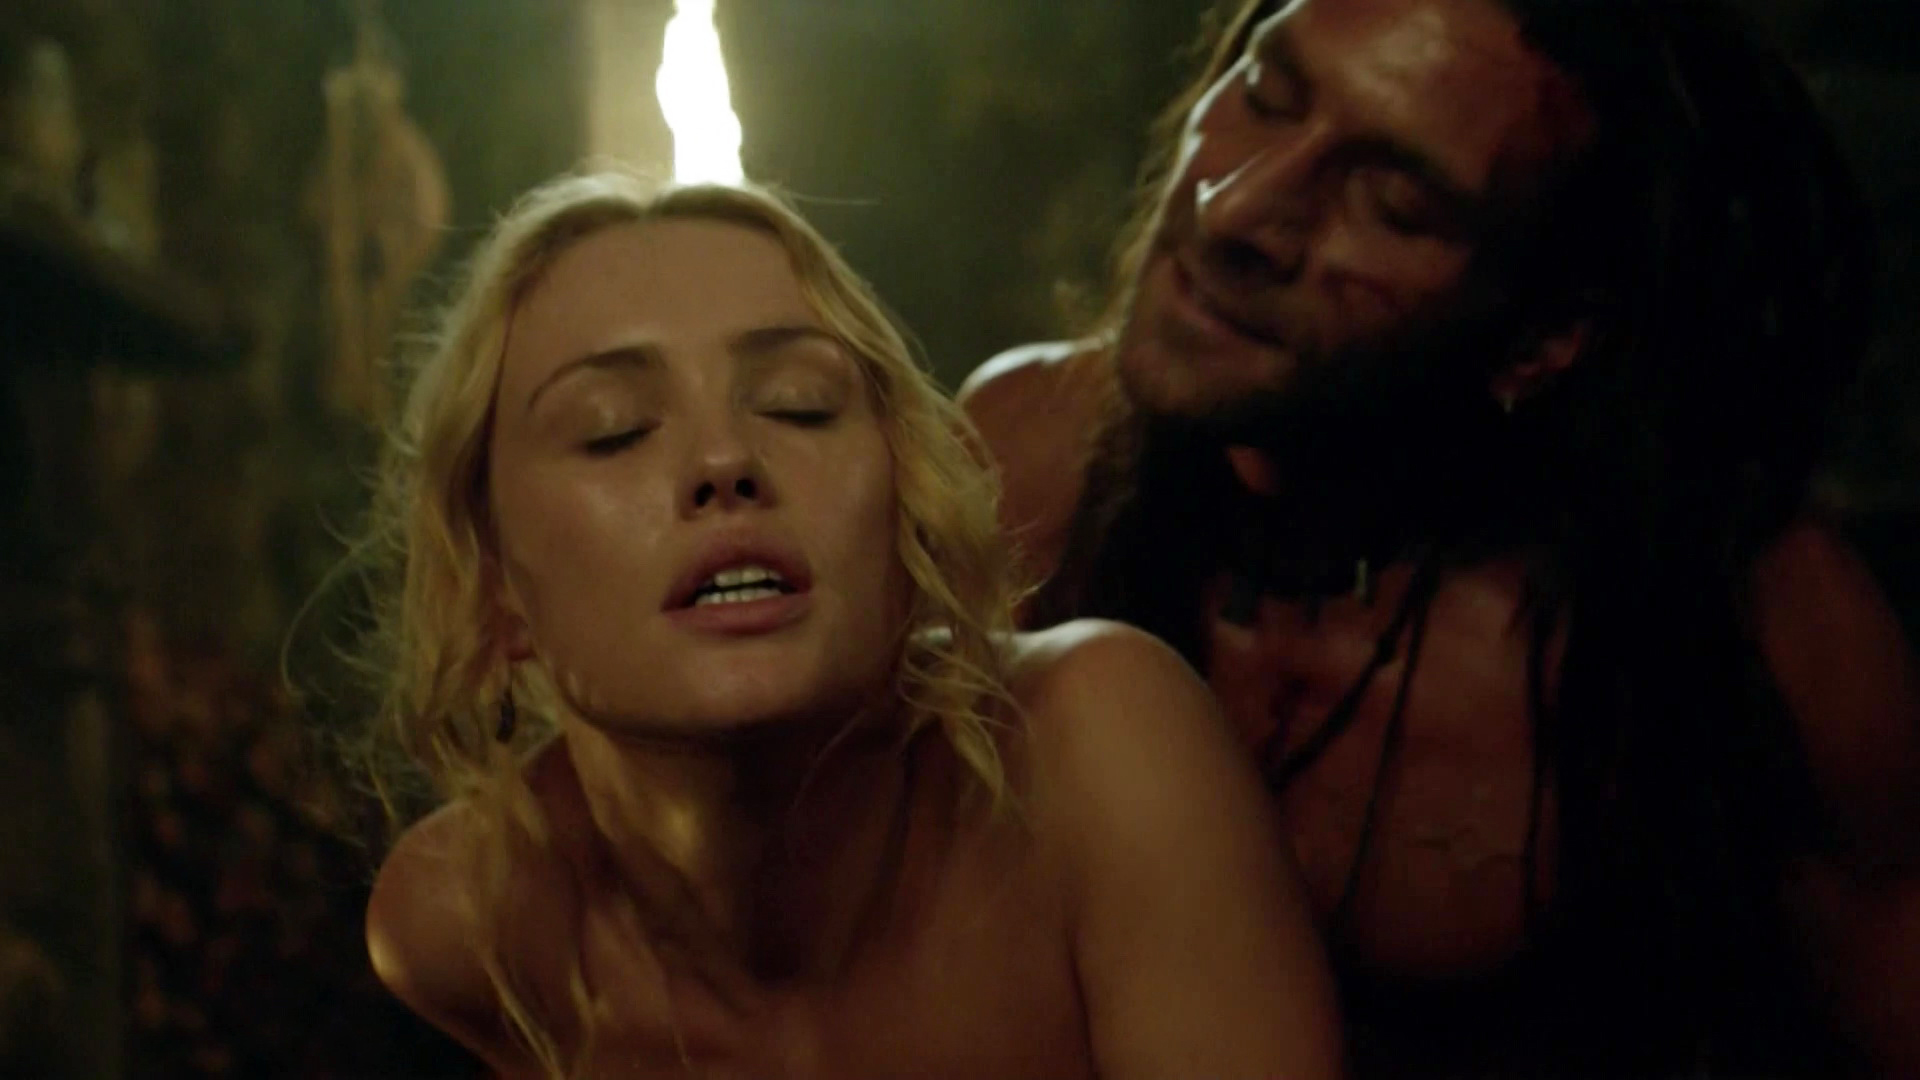 Hanna Sex Scene watch online - hannah new – black sails s02e03 (2015) hdtv 1080p